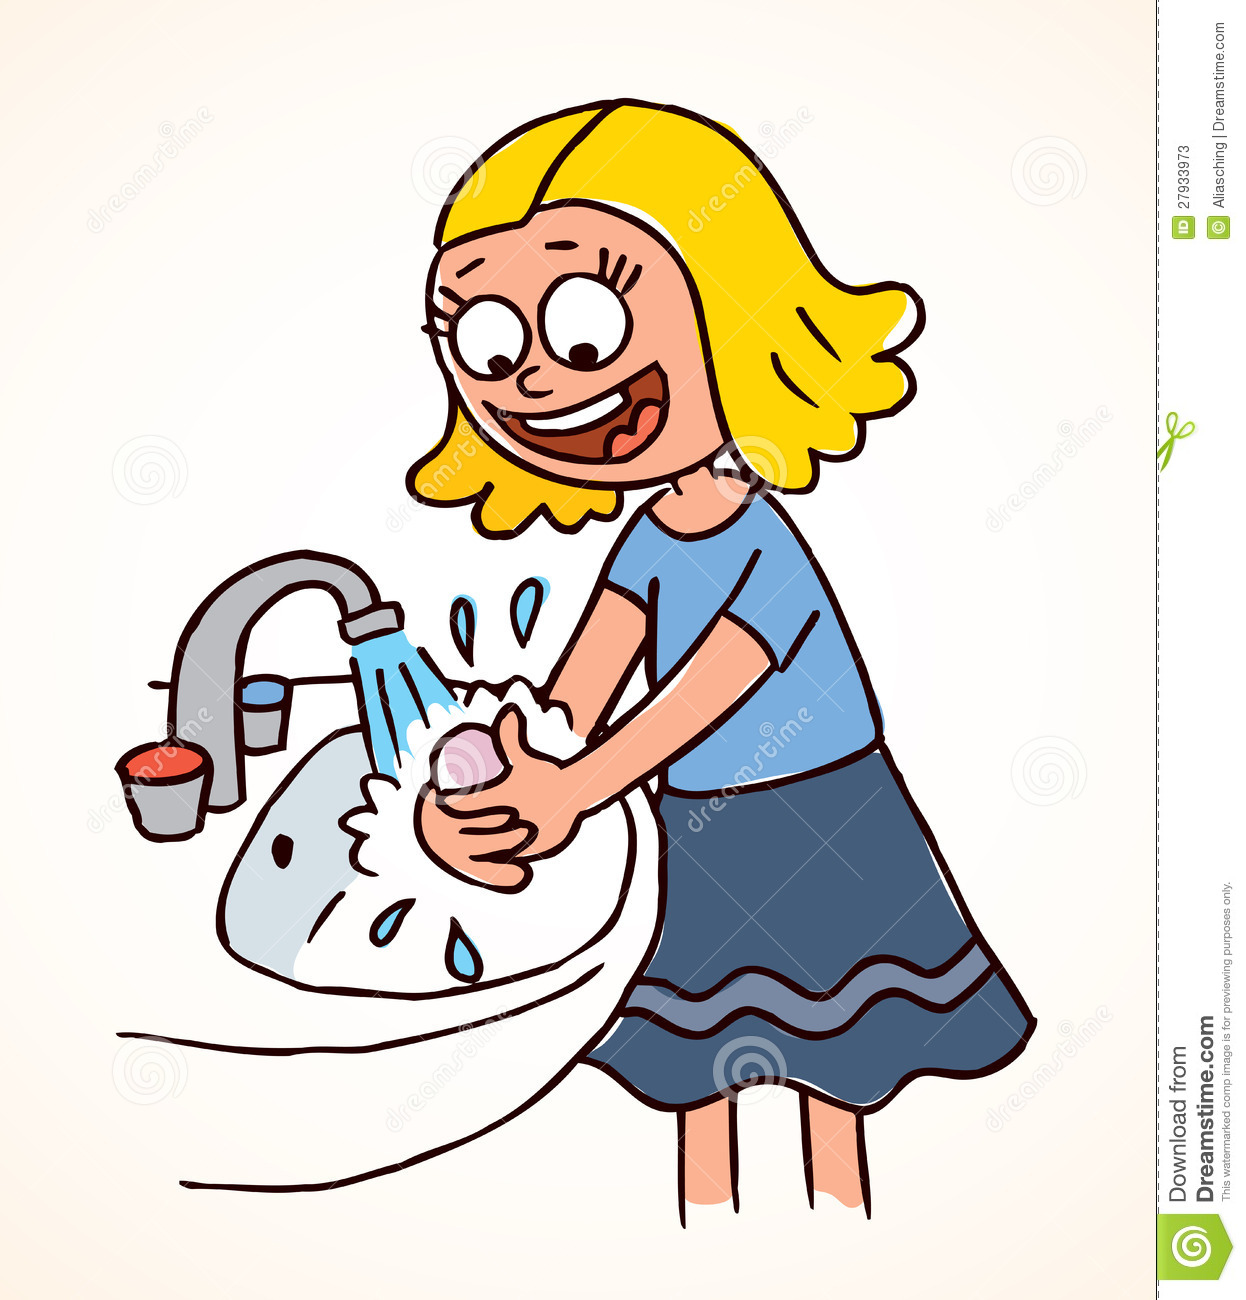 Child washing hands clipart. Clipartfest children